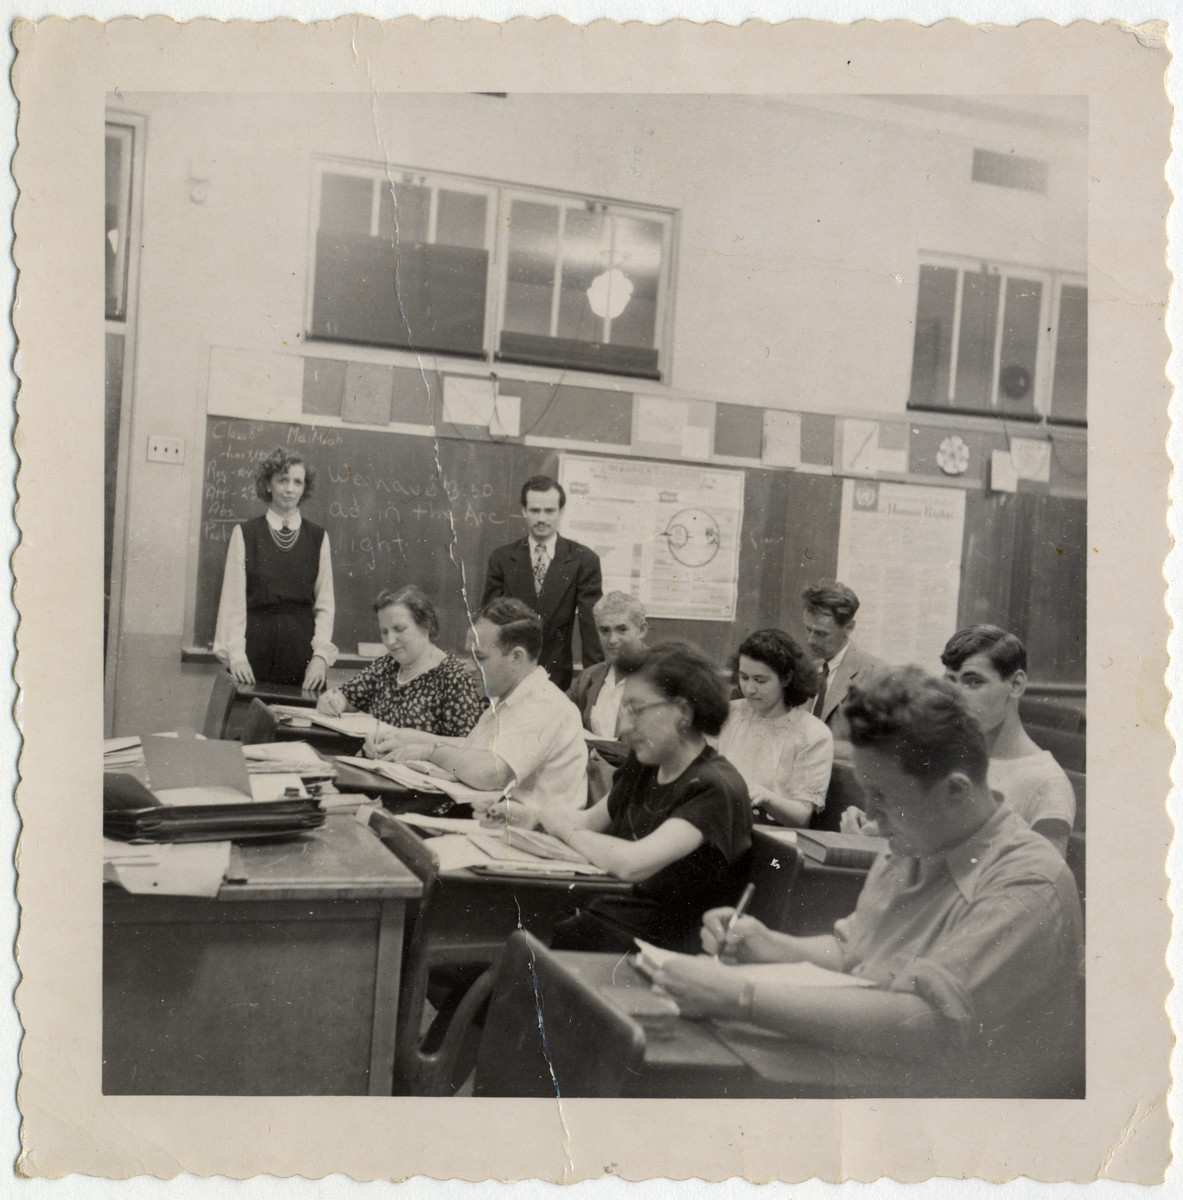 Group portrait of students in an English language class for Deaf immigrants, taught by Alice McVan, a Gallaudet alumna.  Among those pictured are Alice McVan (standing, far left); and (seated left to right) Hilda Wiener Rattner, Richard Wiener, Doris Fedrid, and Fred Fedrid.